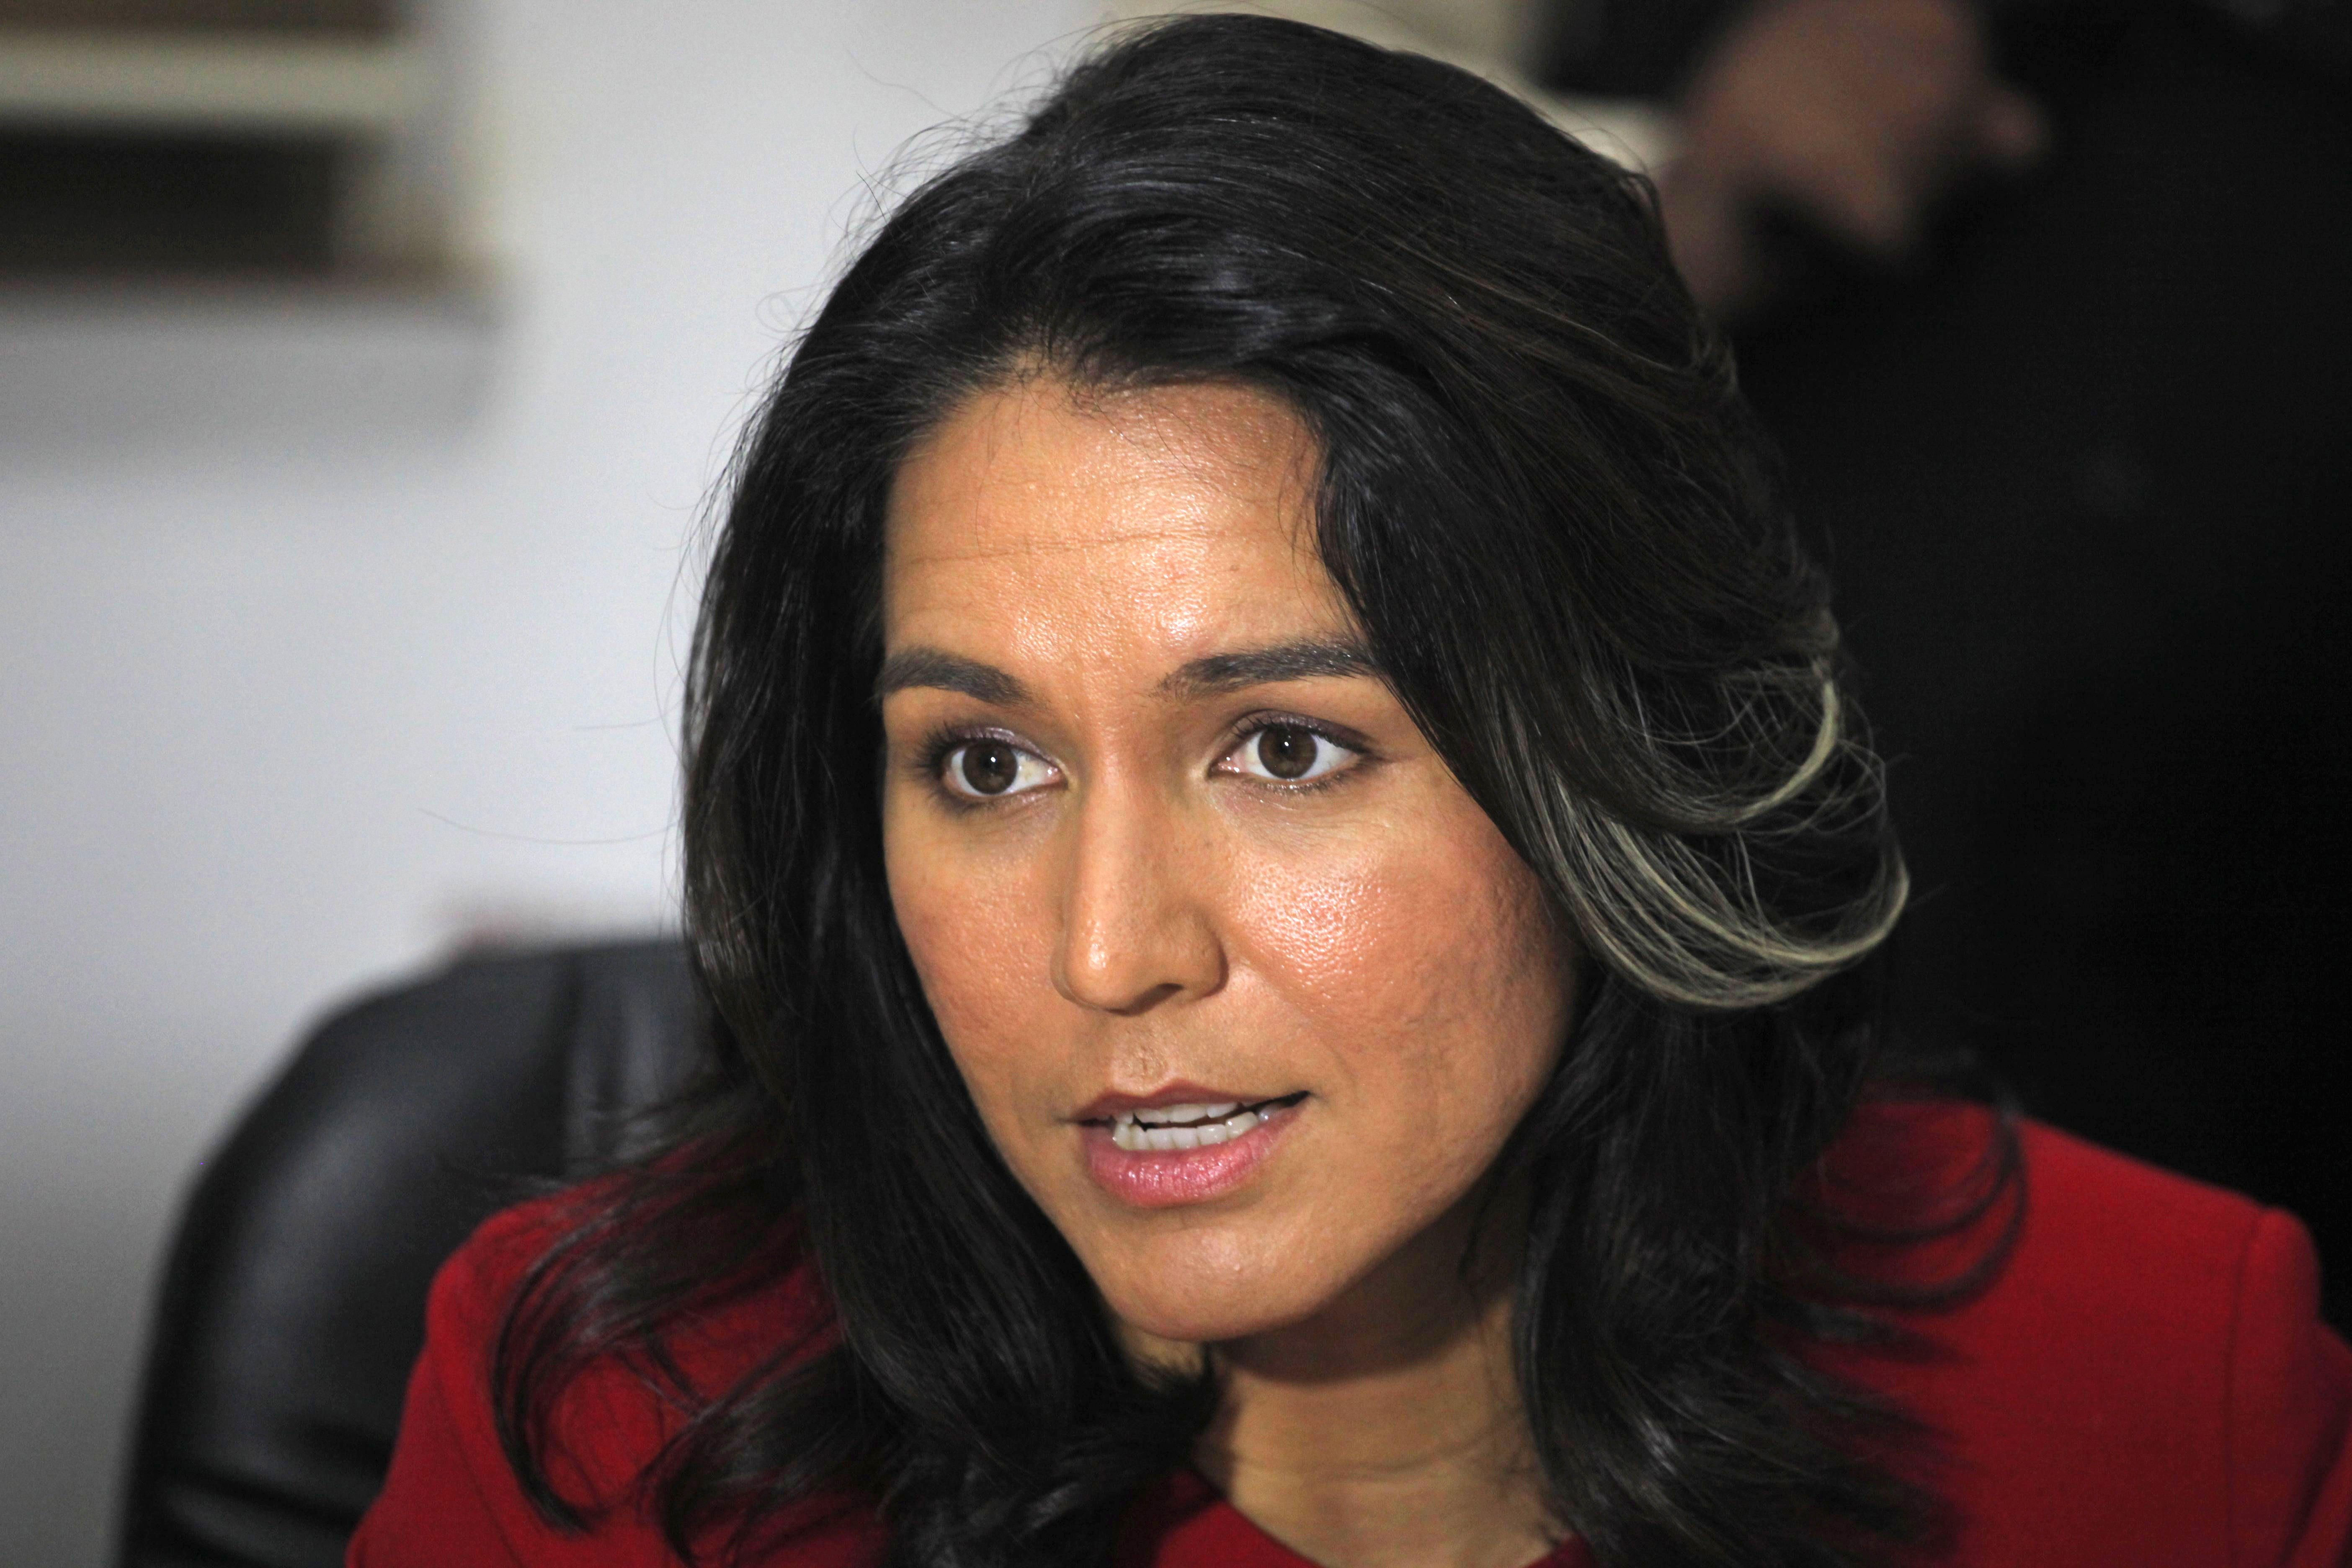 Unease over Congresswoman Tulsi Gabbard's meeting with President Bashar al-Assad during Syria ...